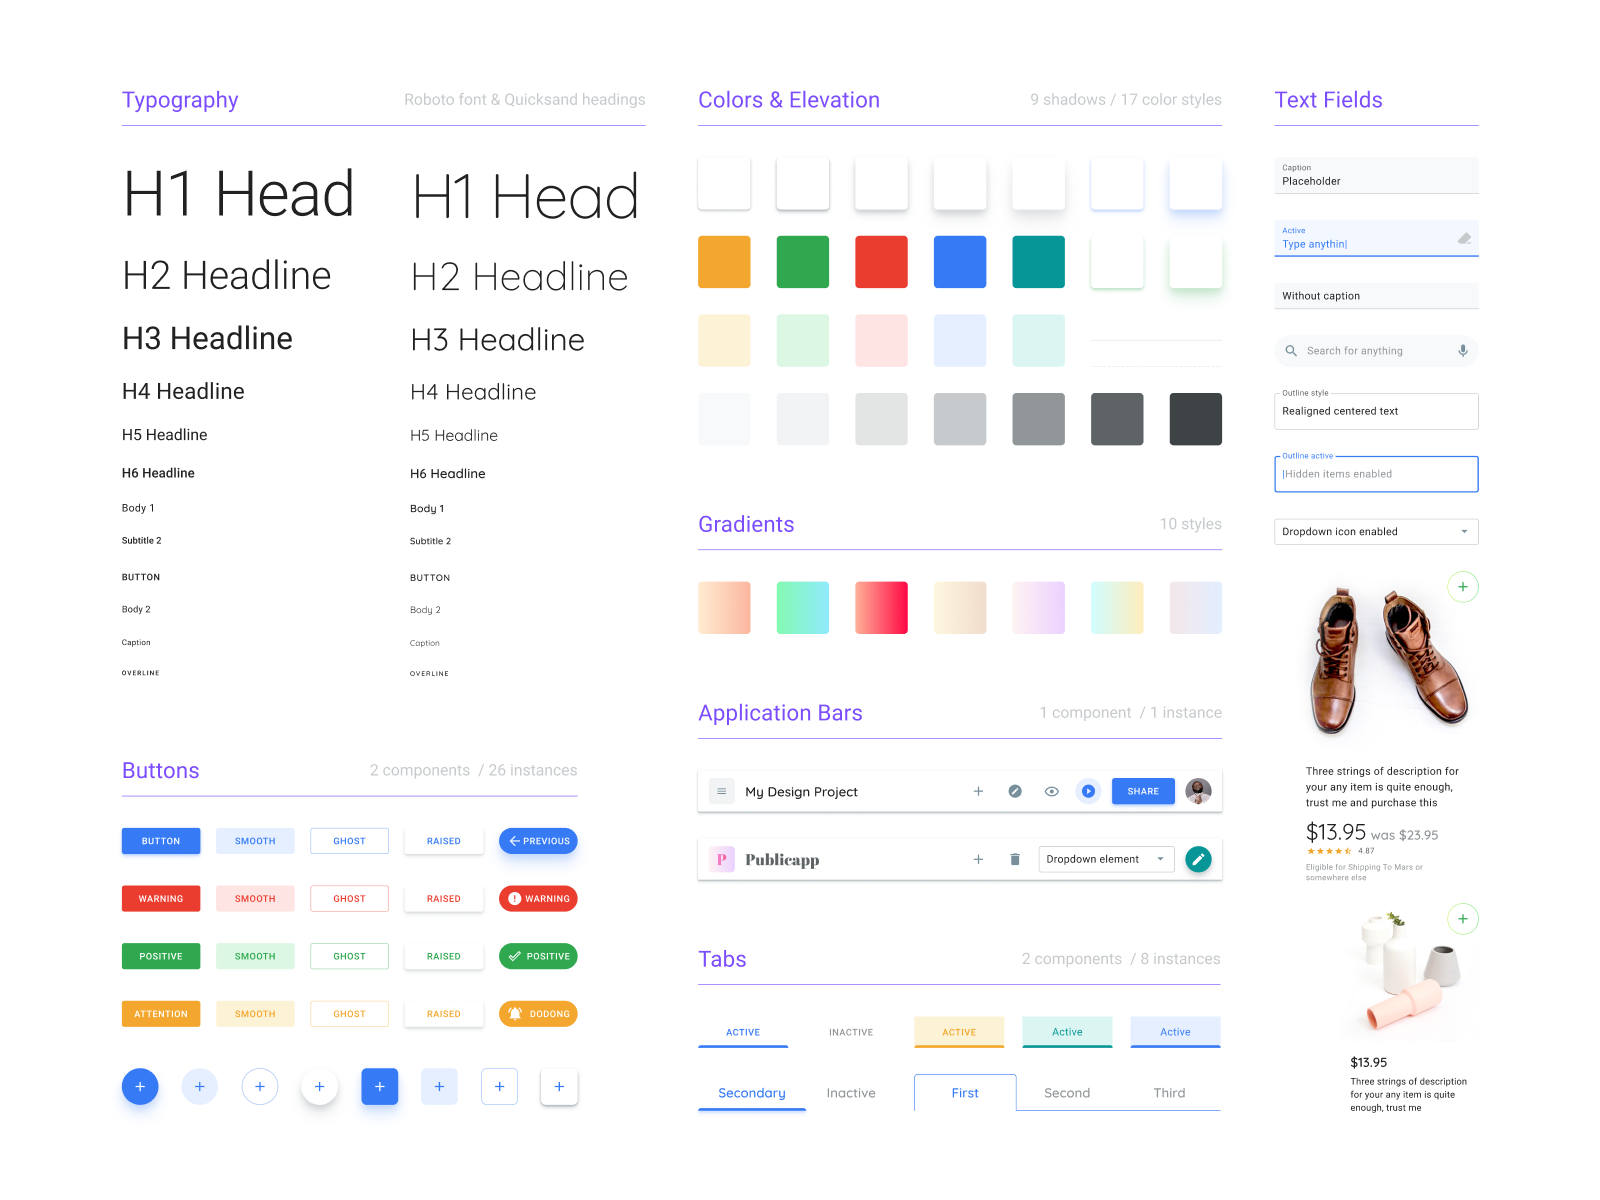 Monetizing the design: what I've learned after a year of non-stop UI grinding